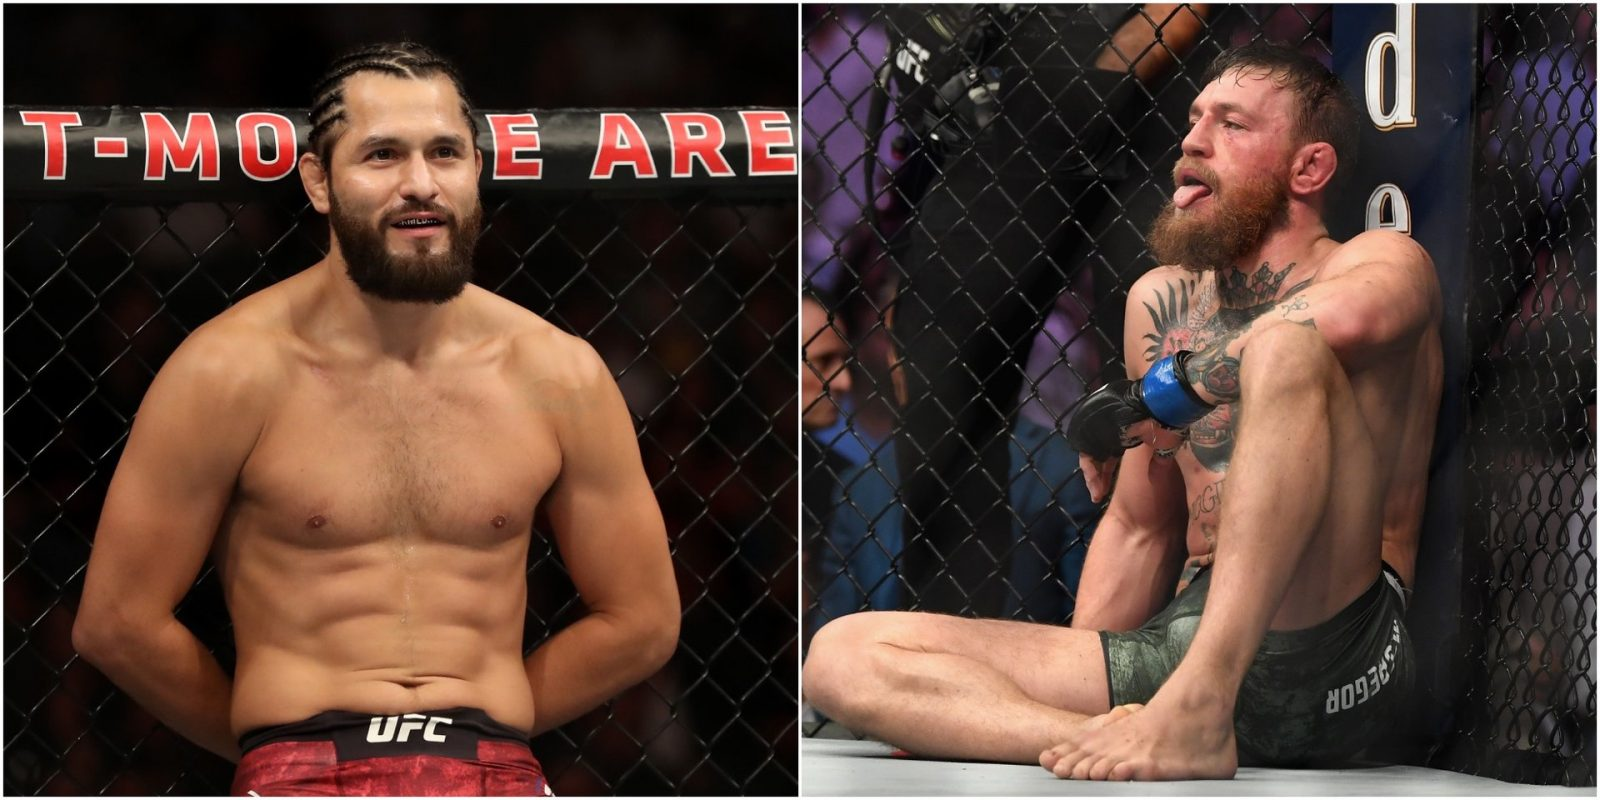 Jorge Masvidal says Dana White won't let him fight Conor McGregor in case he ends up murdering him